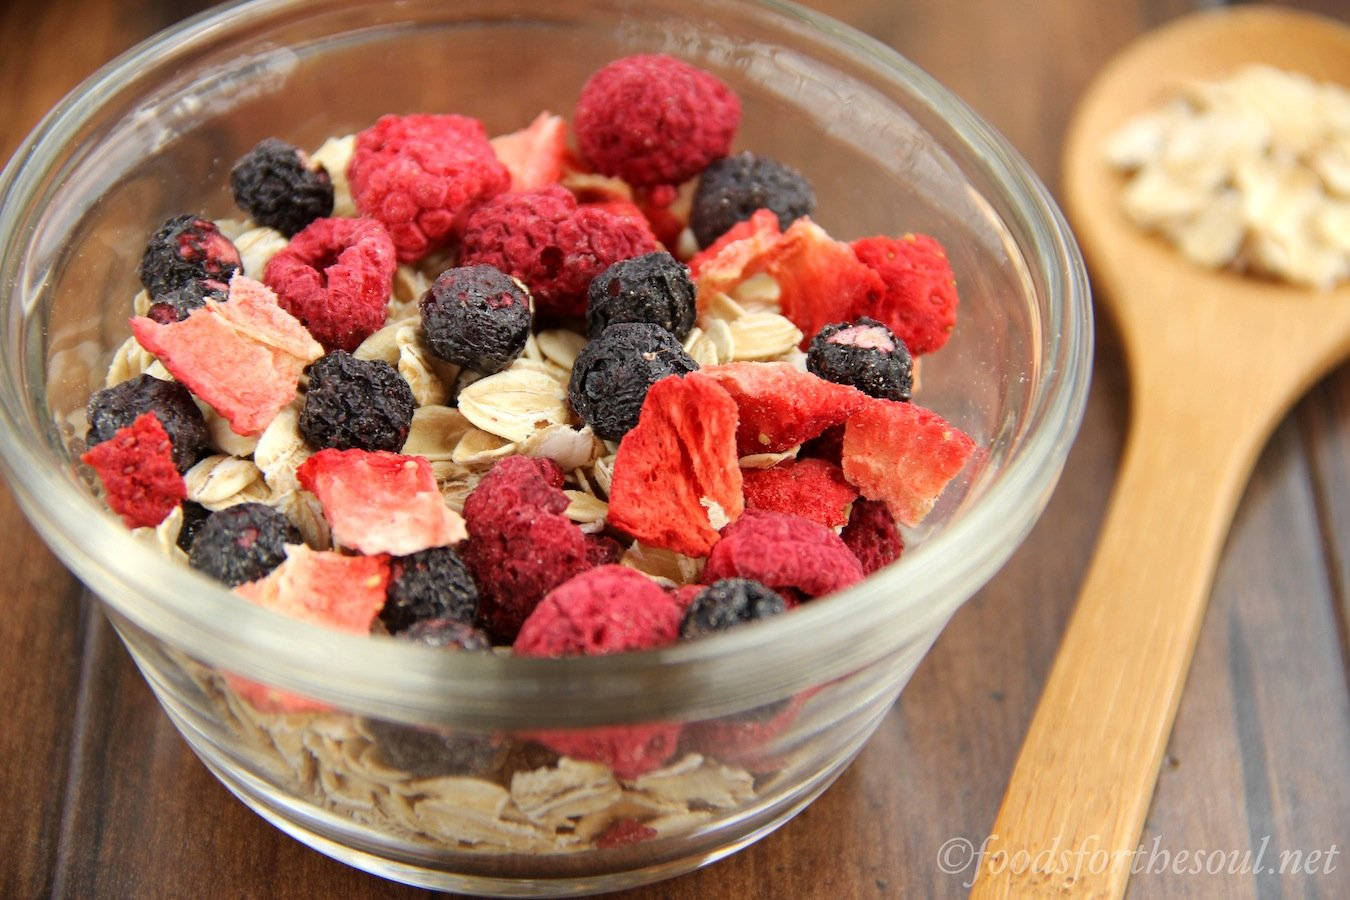 Triple Berry Muesli -- a healthy, clean-eating breakfast ready in just 1 minute! Packed with fiber to keep you full!